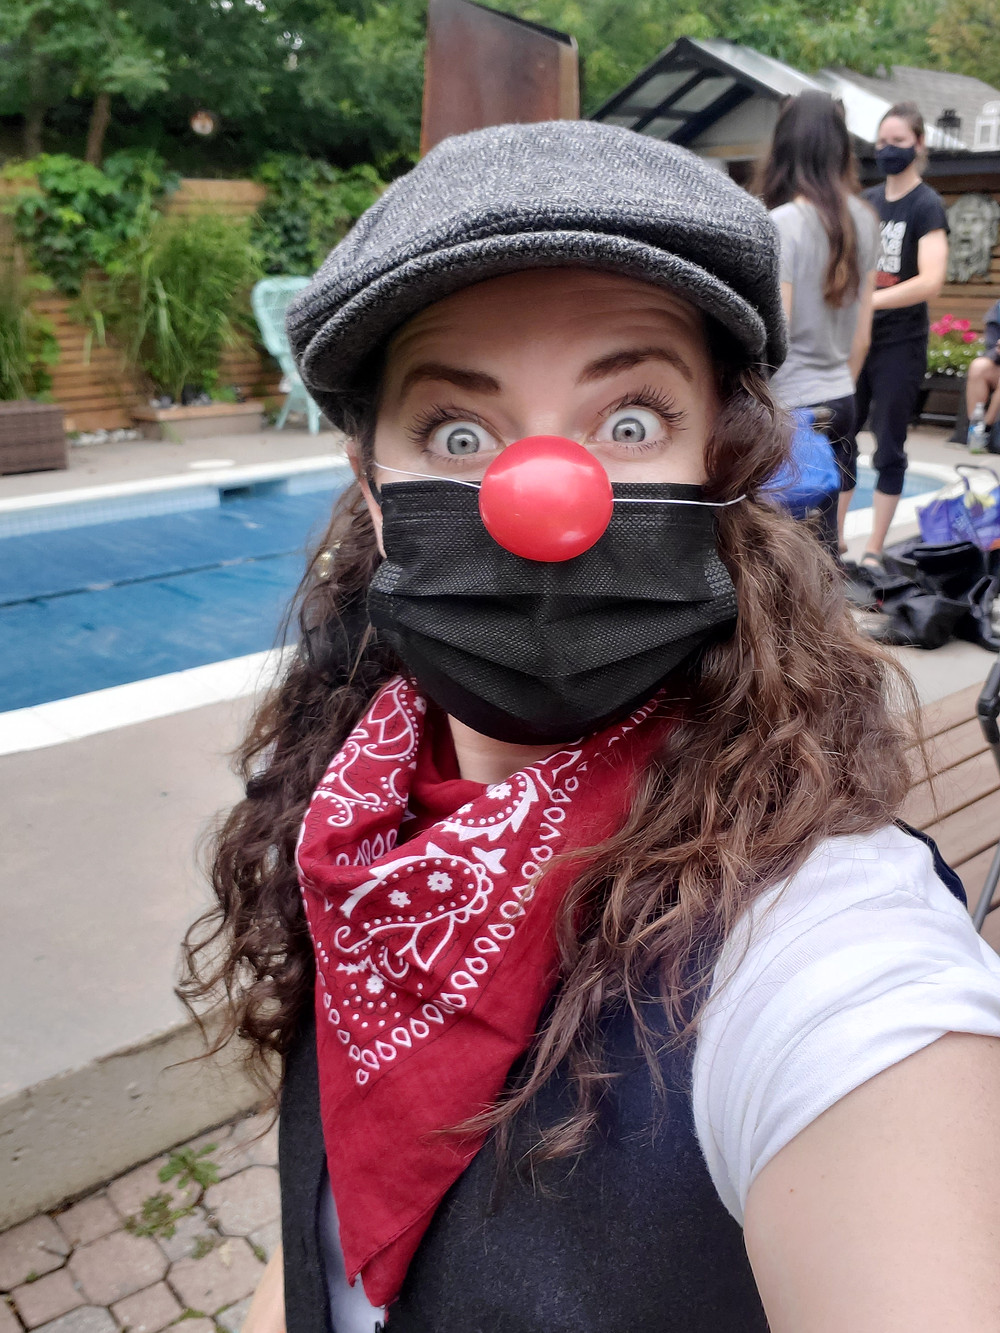 Person with red clown nose and grey hat taking a selfie